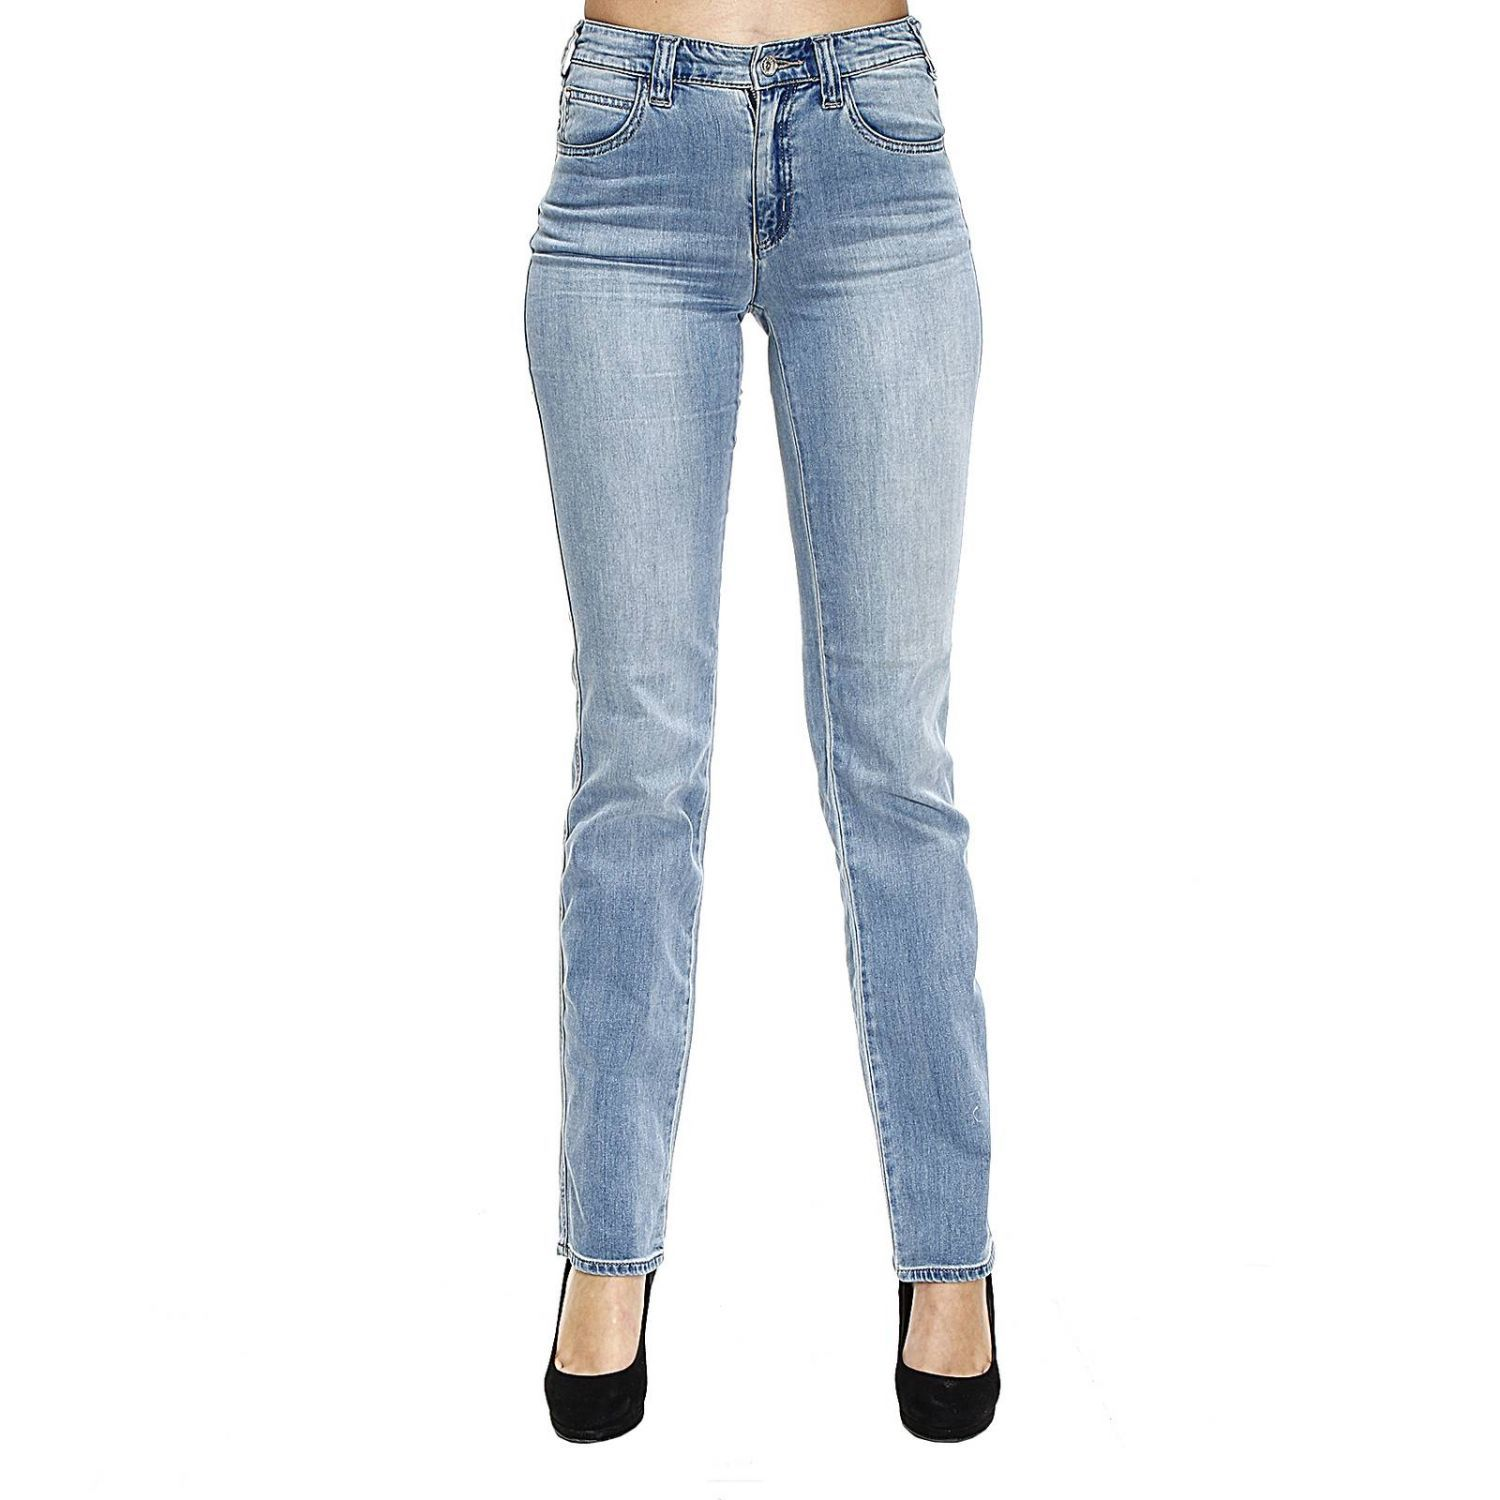 Jeans Jeans Denim Waist High Gamba Dritta Stretch